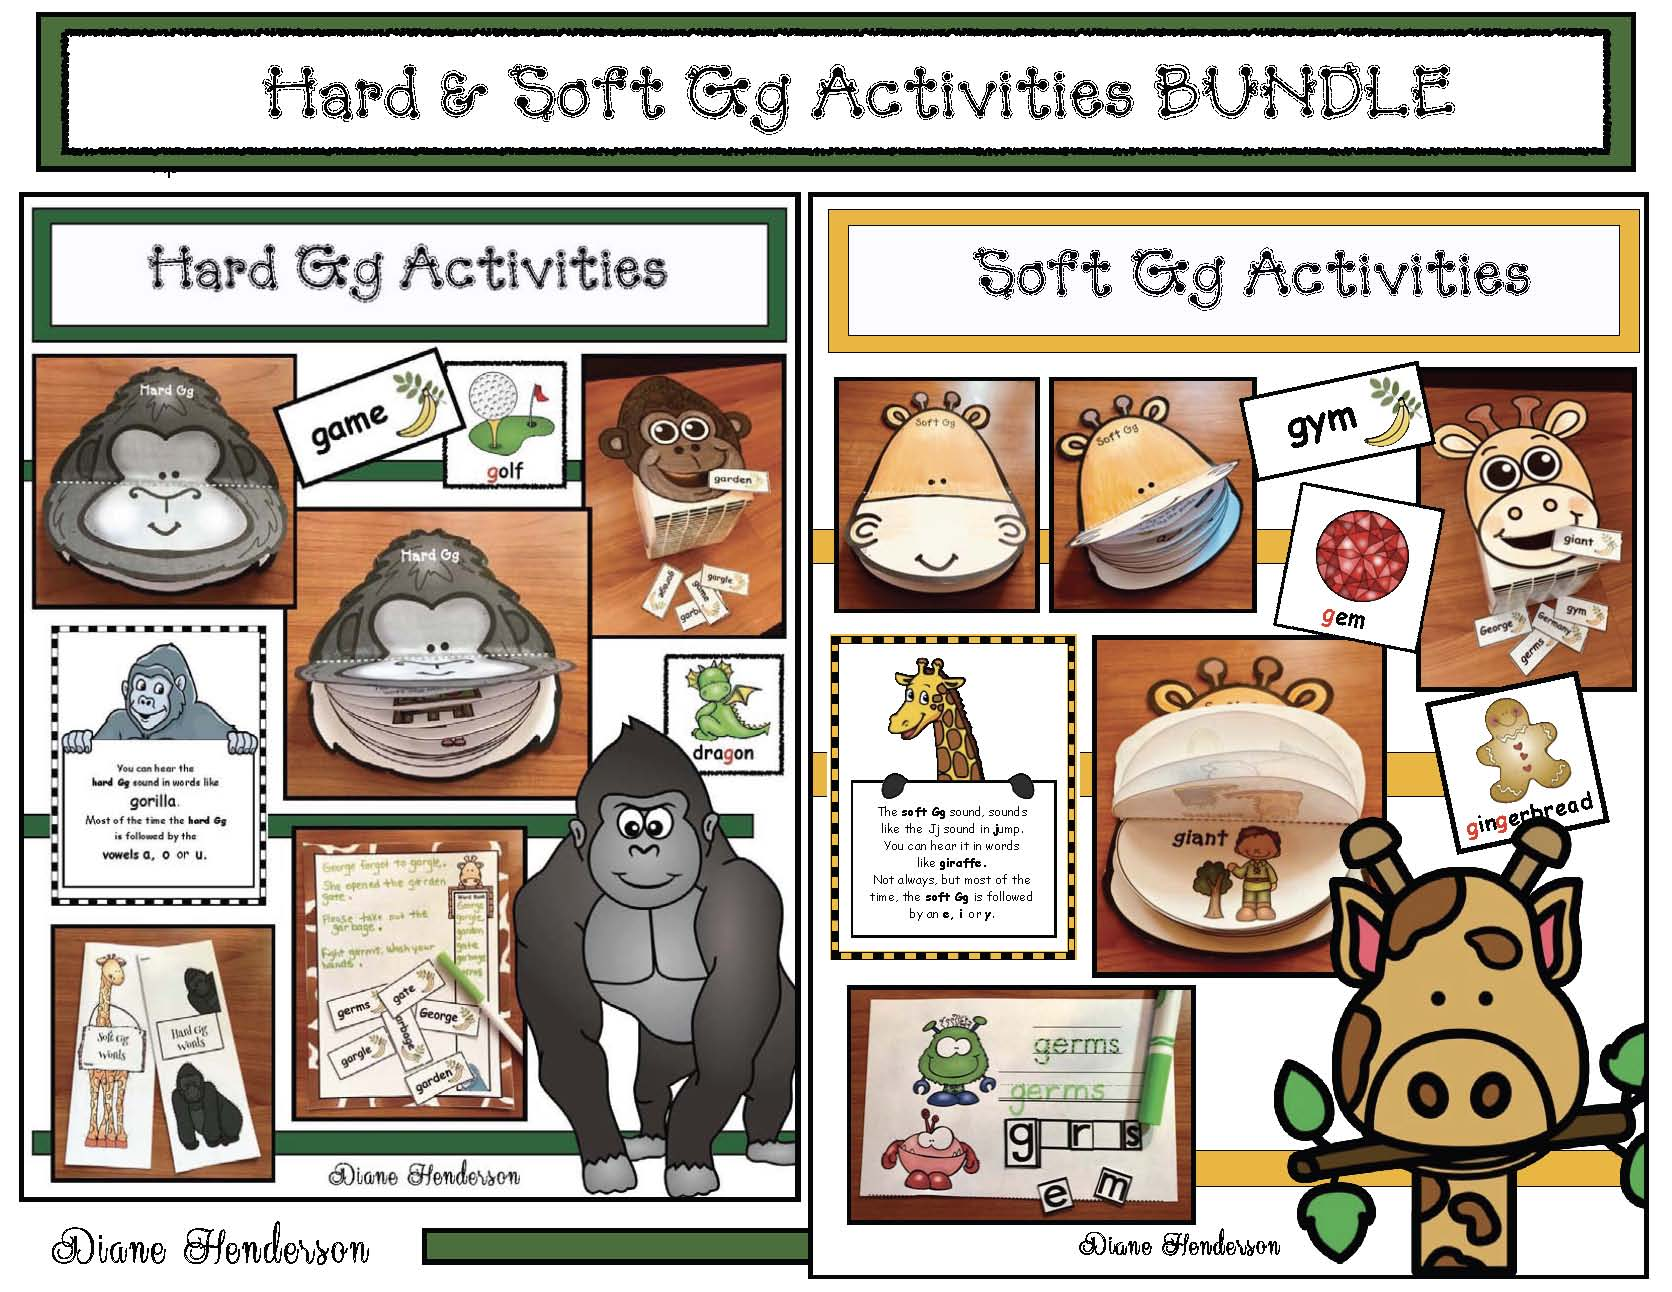 hard and soft g activities, games, crafts, word work